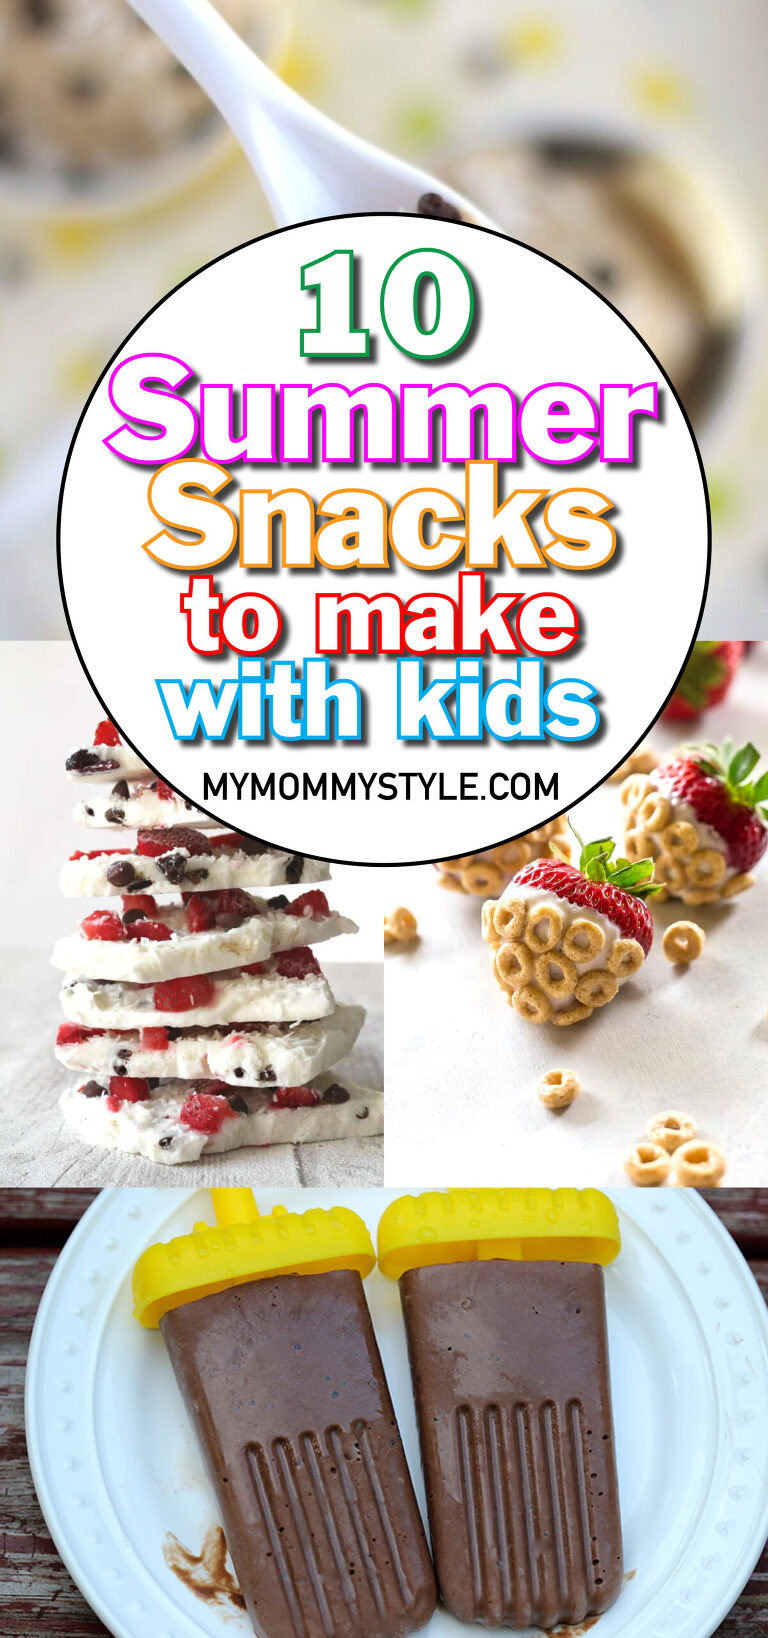 Summer snacks to make with kids